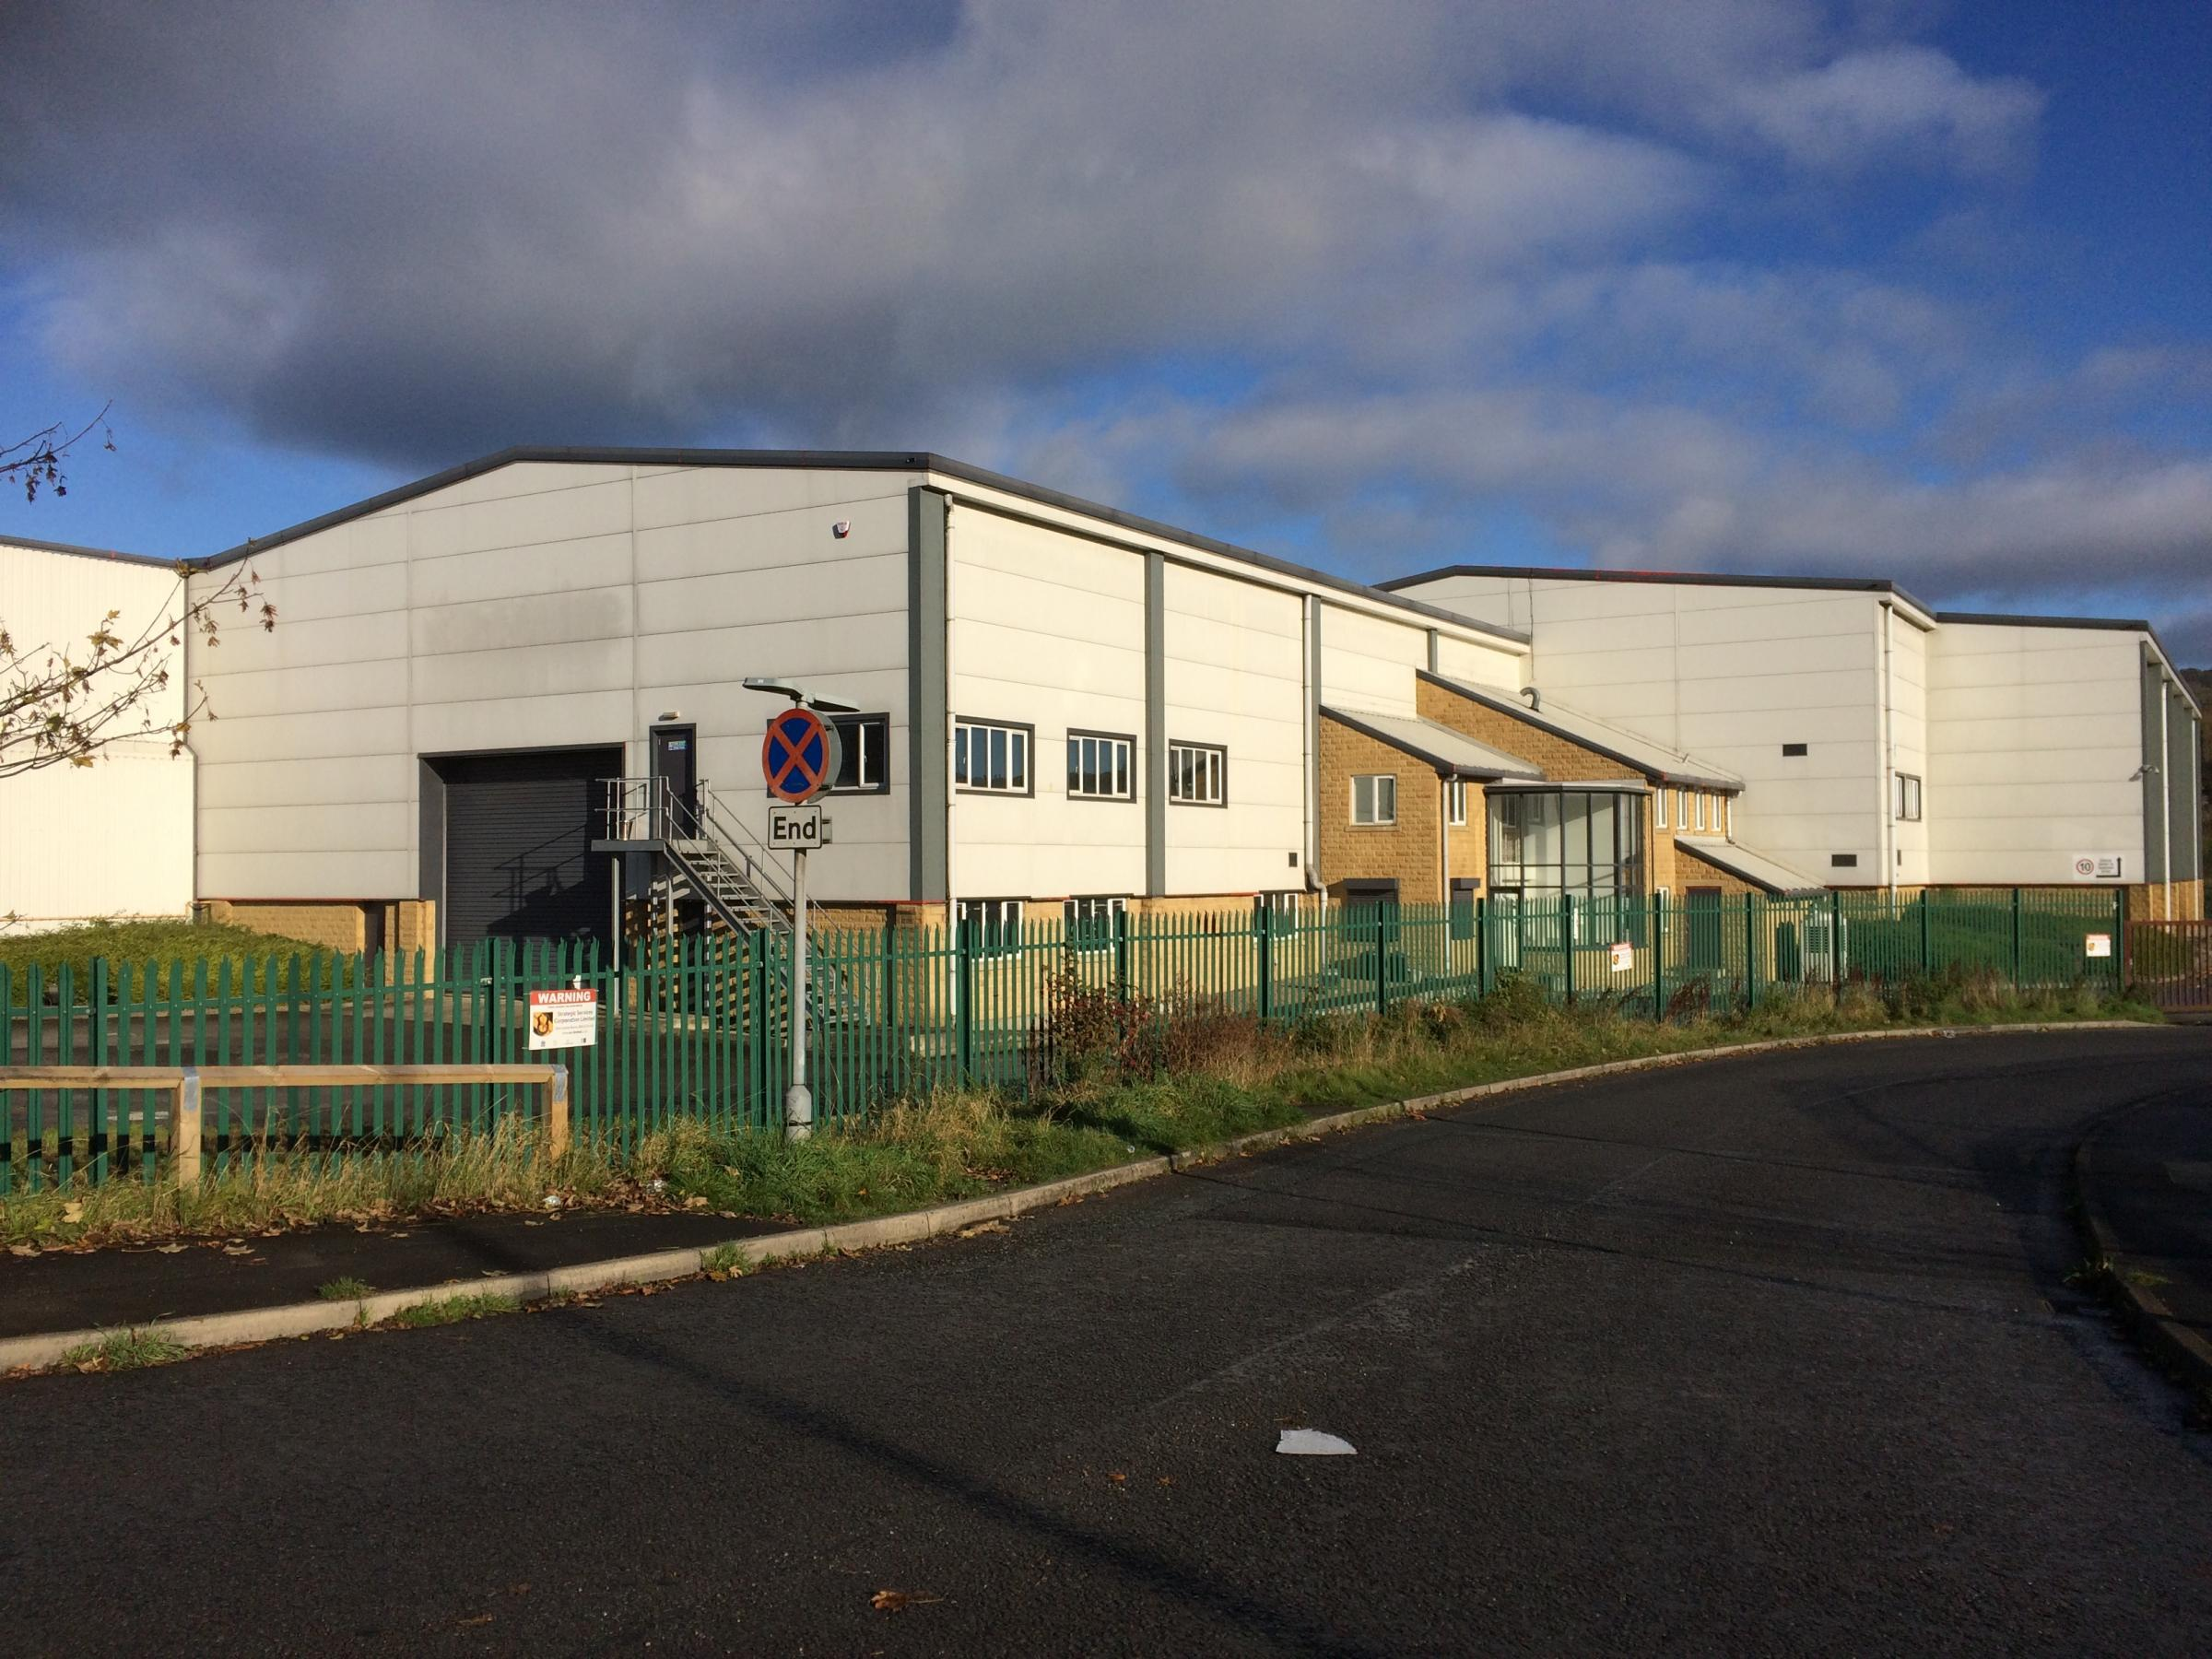 The former Fuzzwire premises which will become the new base for Dales Dairies in Keighley